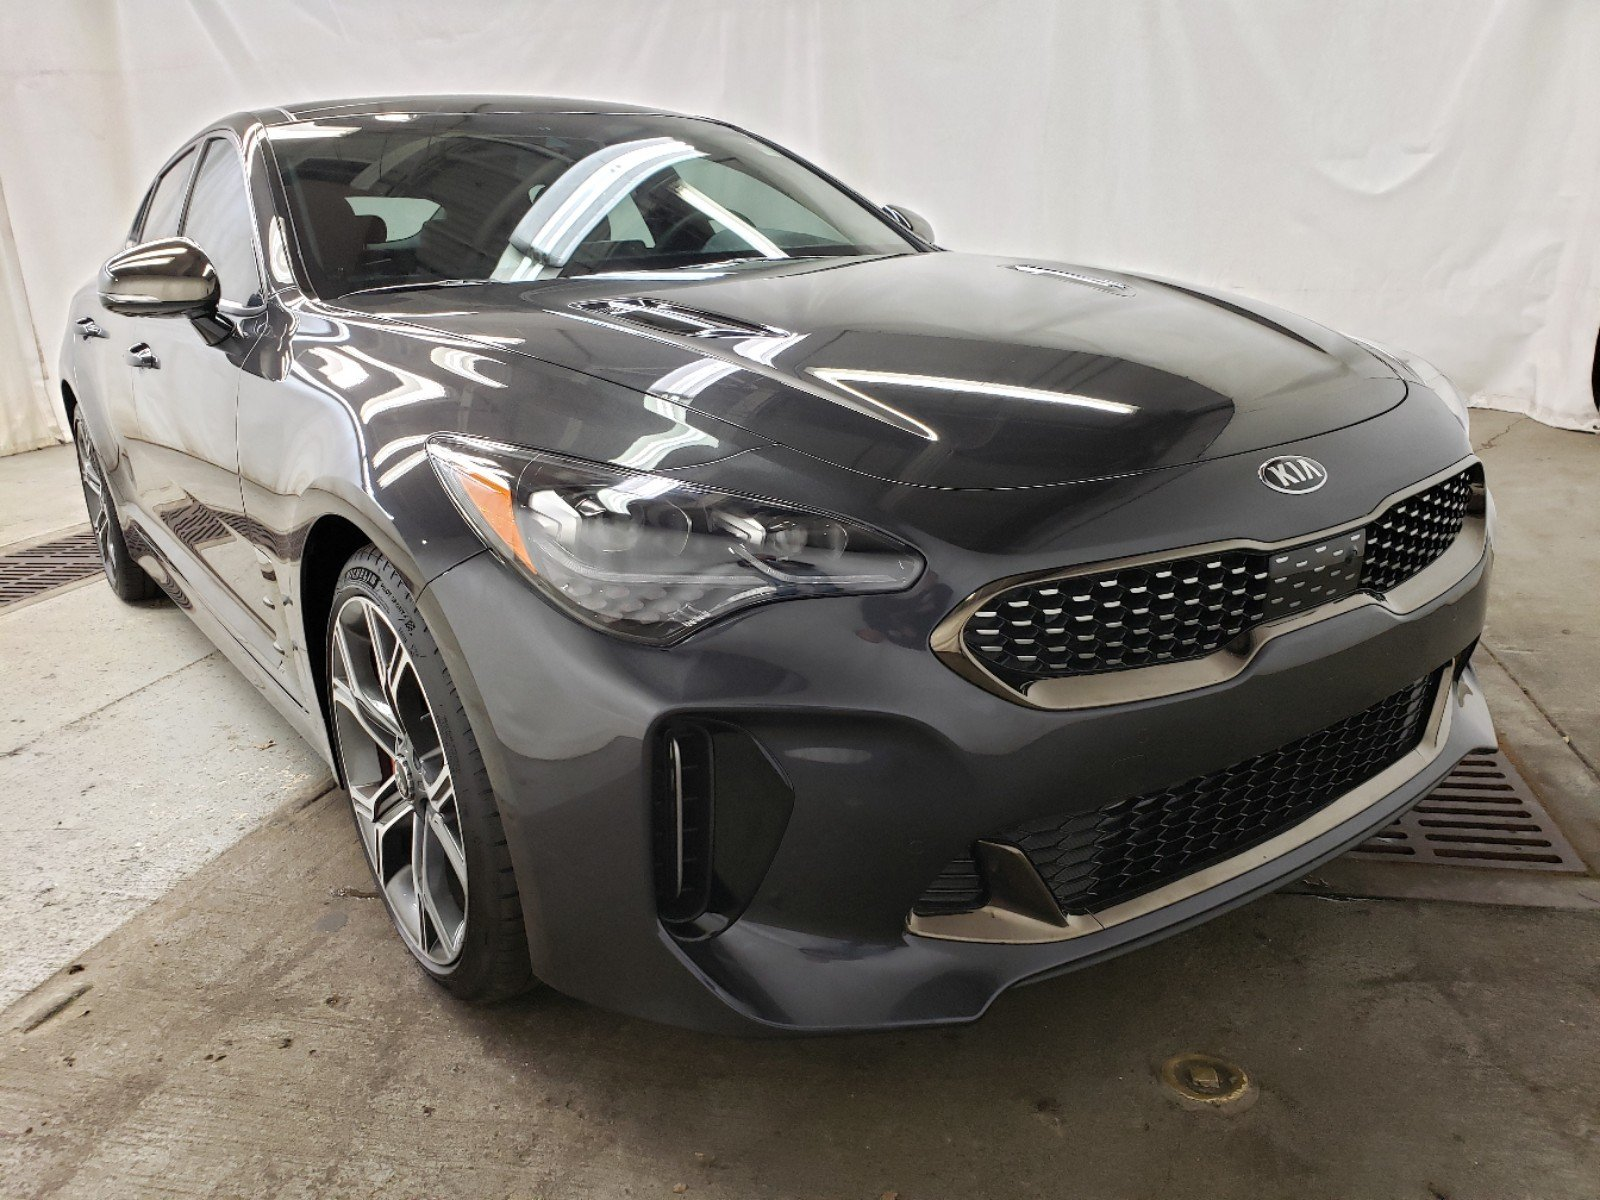 New 2019 Kia Stinger Gt2 4dr Car In Davenport K16769 Lujack Kia